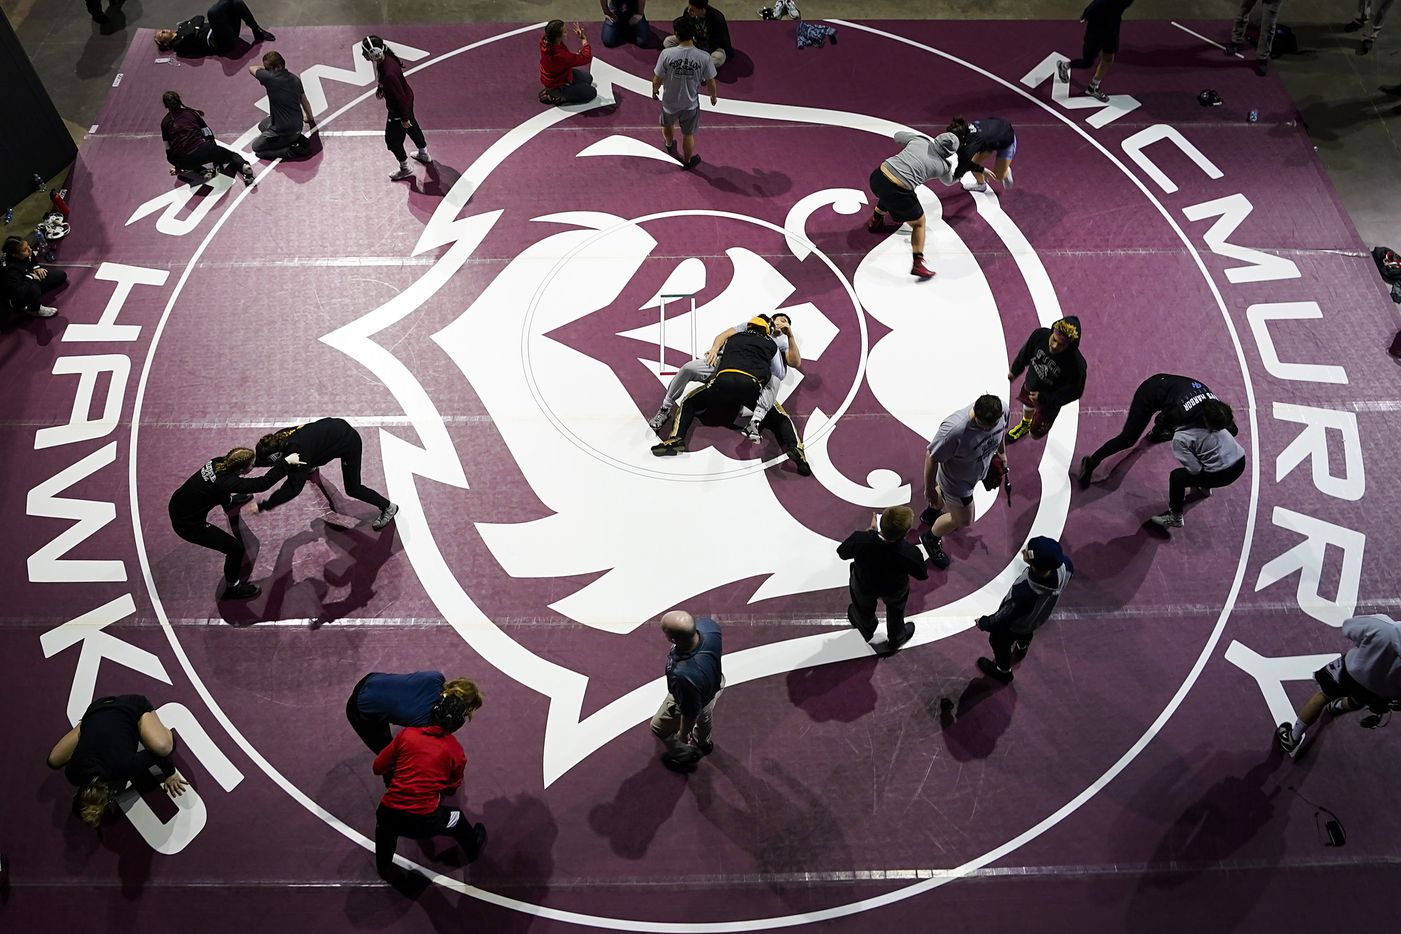 Wrestlers warm up before competing in the semifinals of the NCWA national championships at the Allen Events Center on Friday, March 13, 2020, in Allen, Texas.